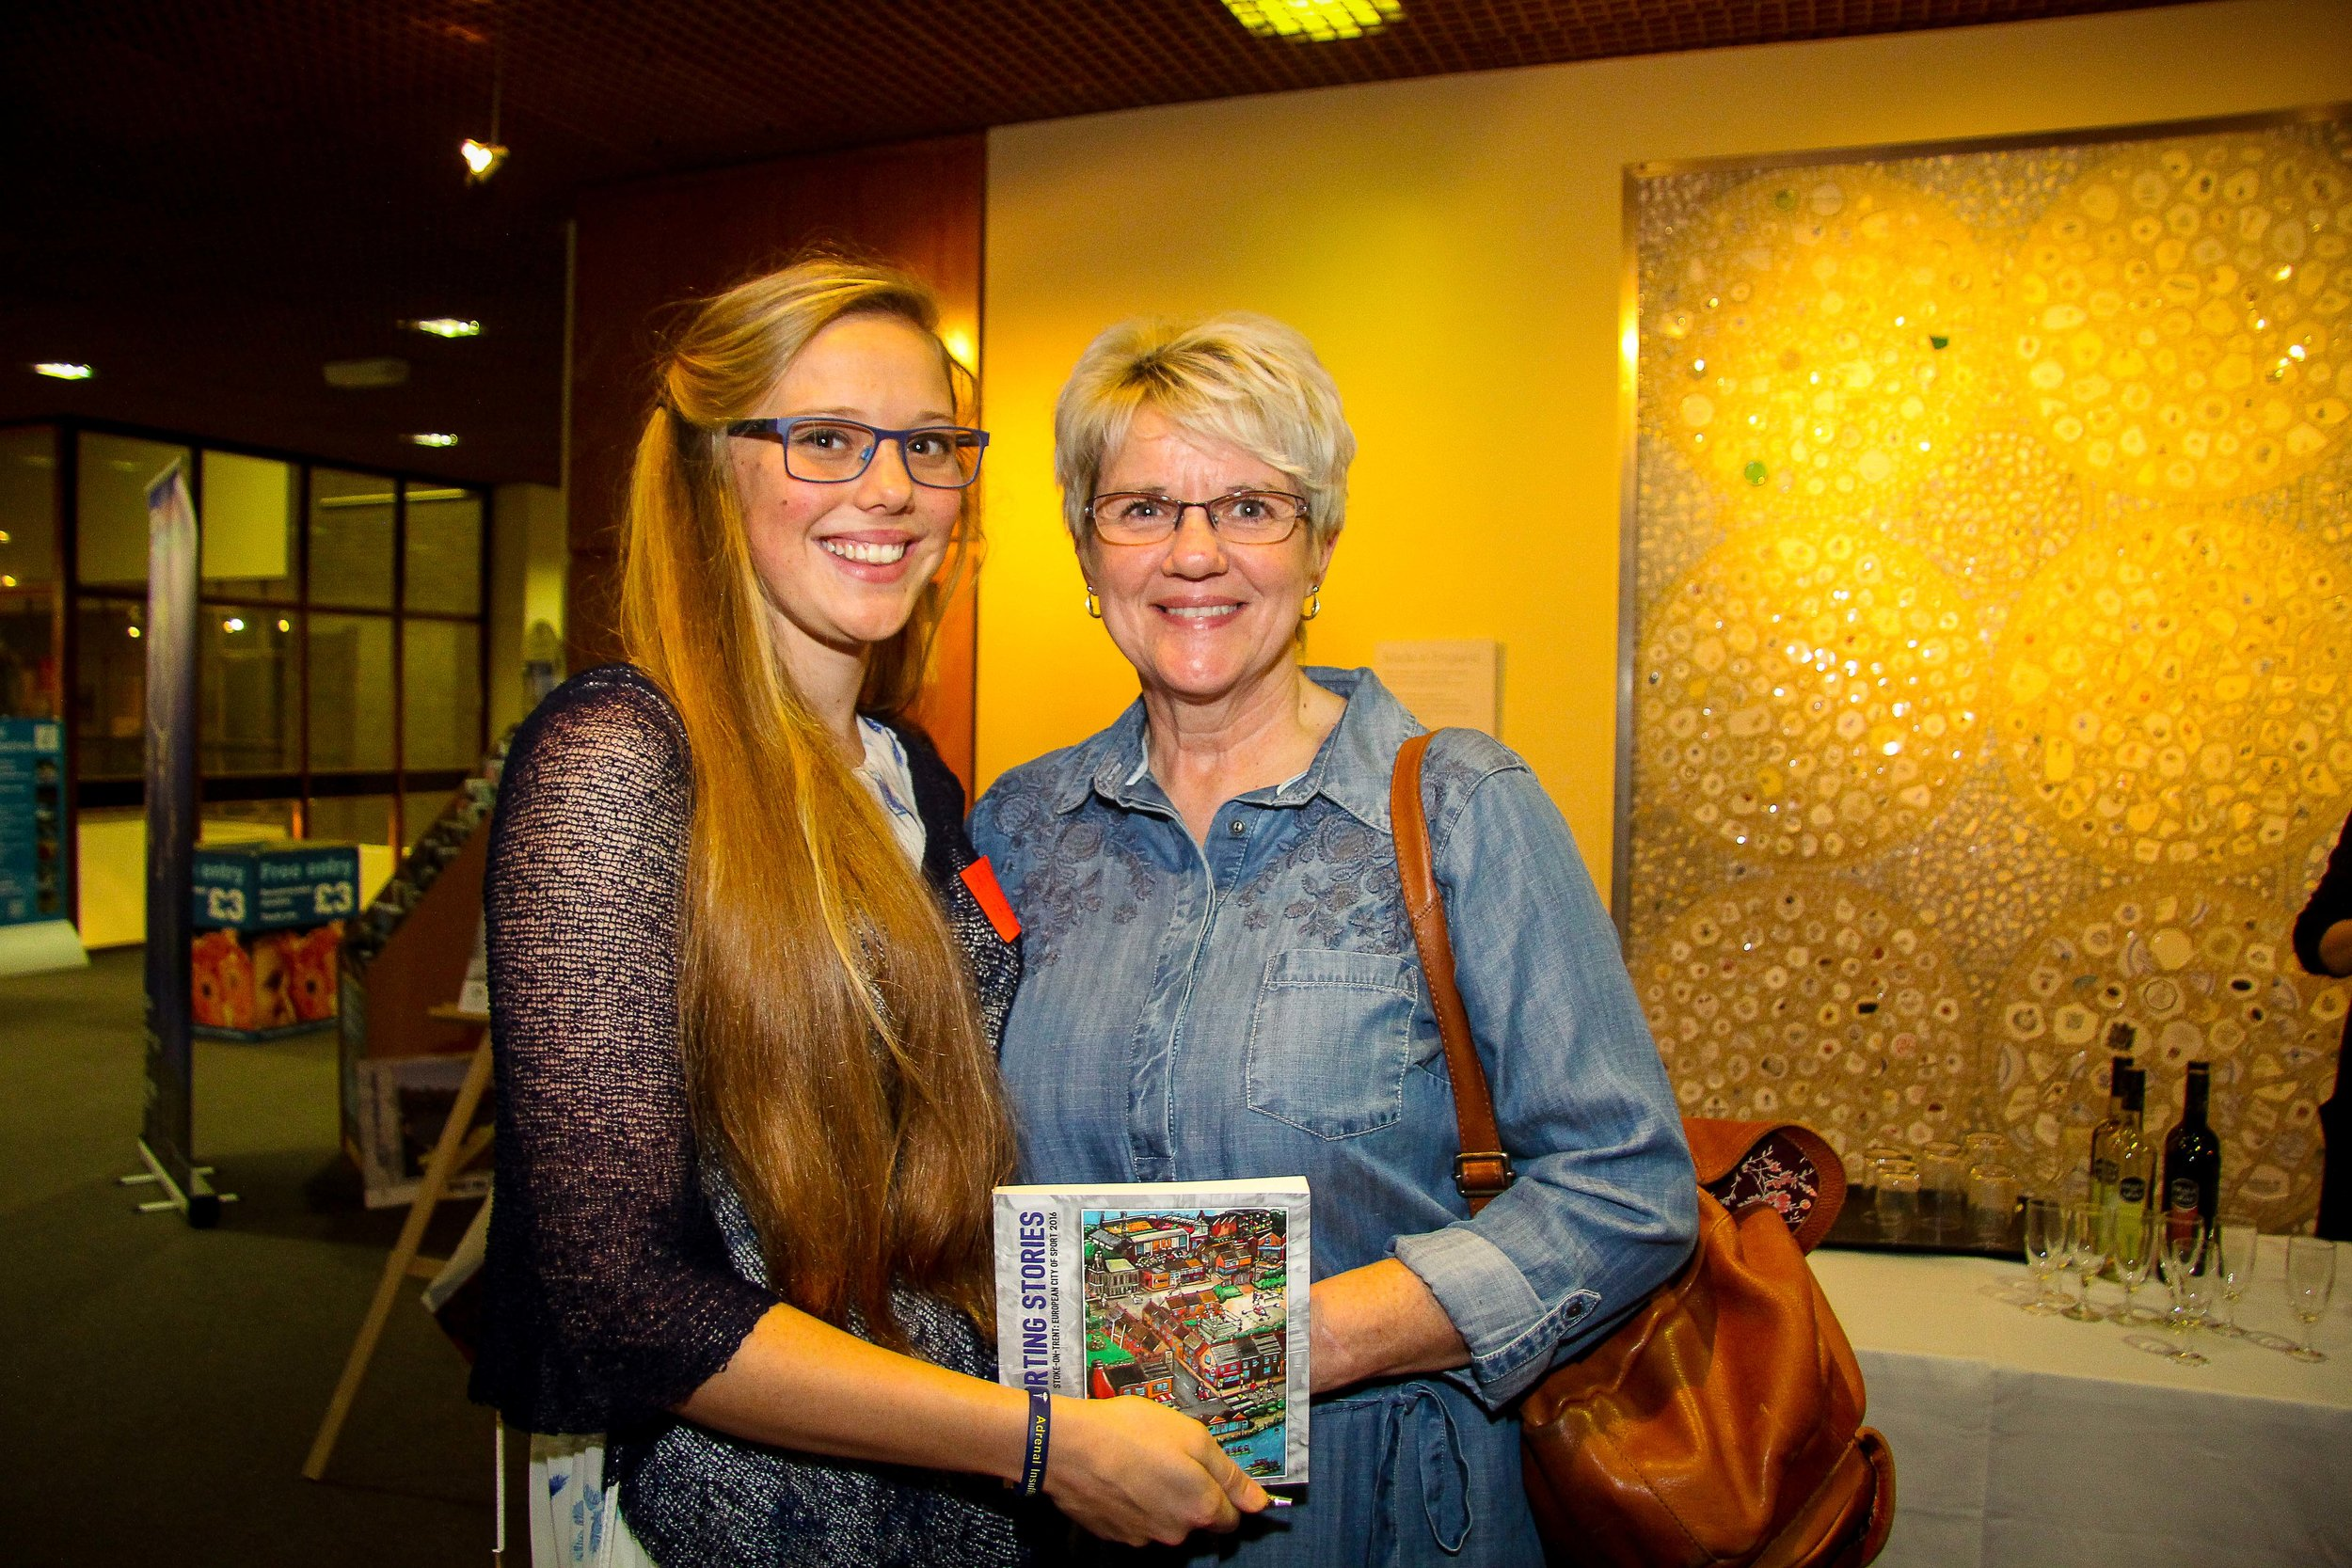 Zara, an inspirational triathlete and author of a great sporting story, with her own greatest hero - her mum!